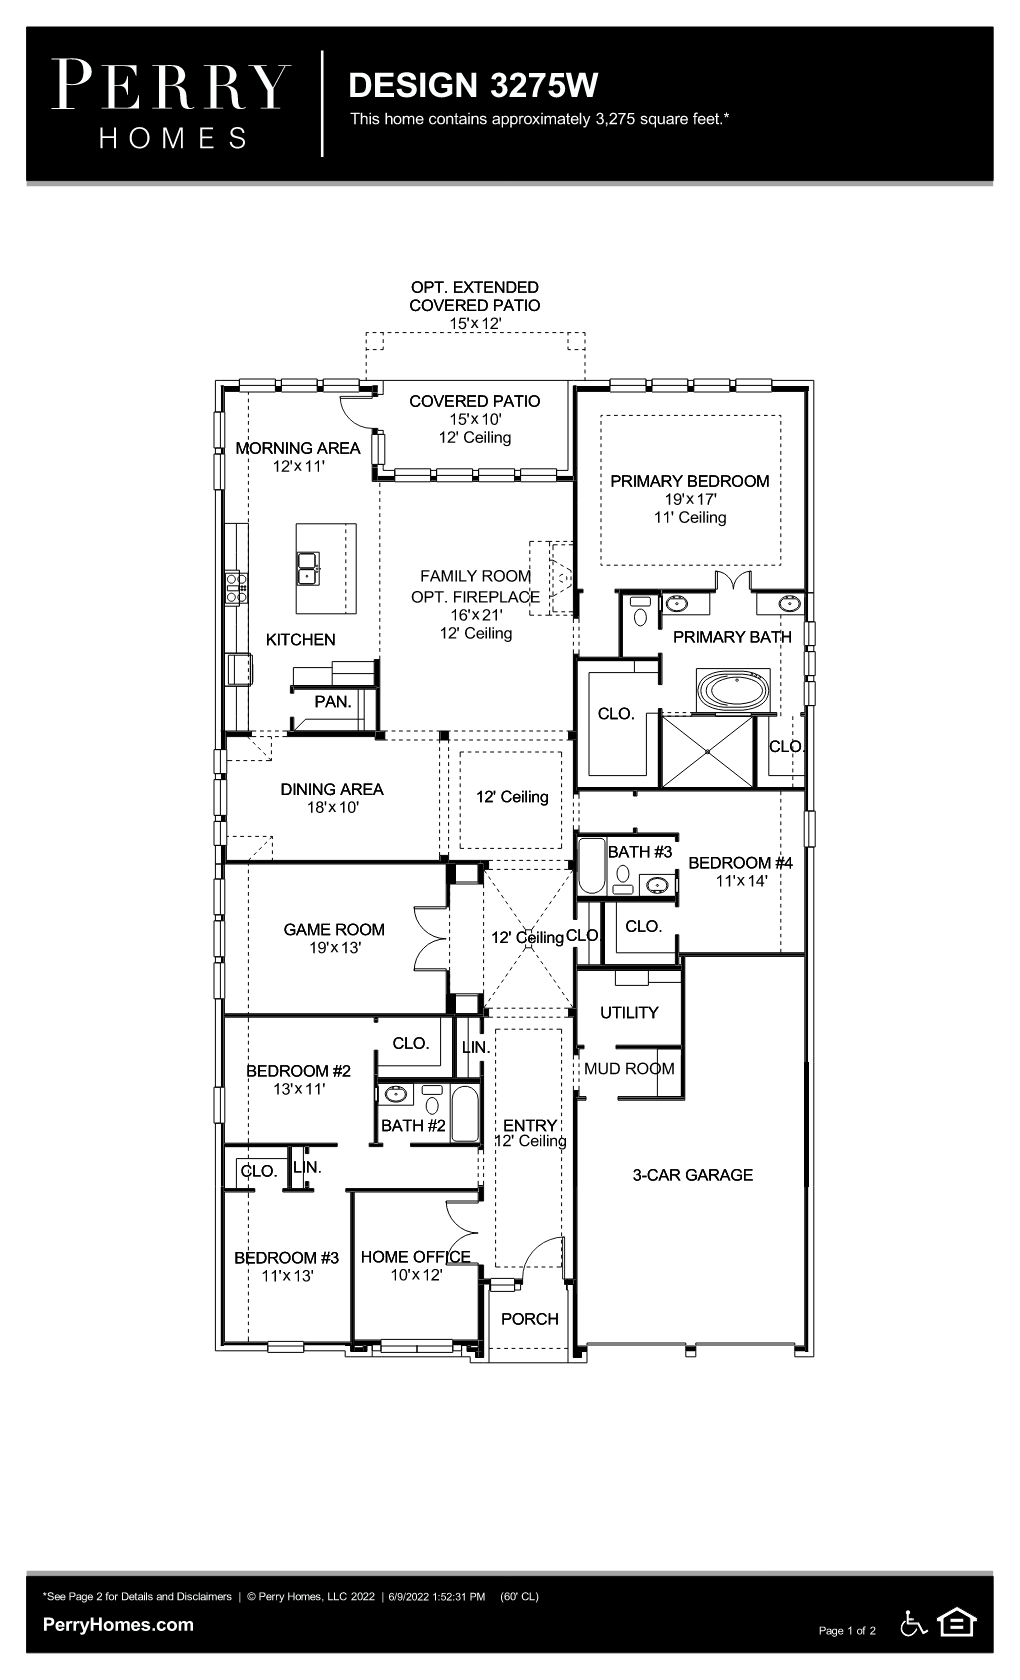 Floor Plan for 3275W